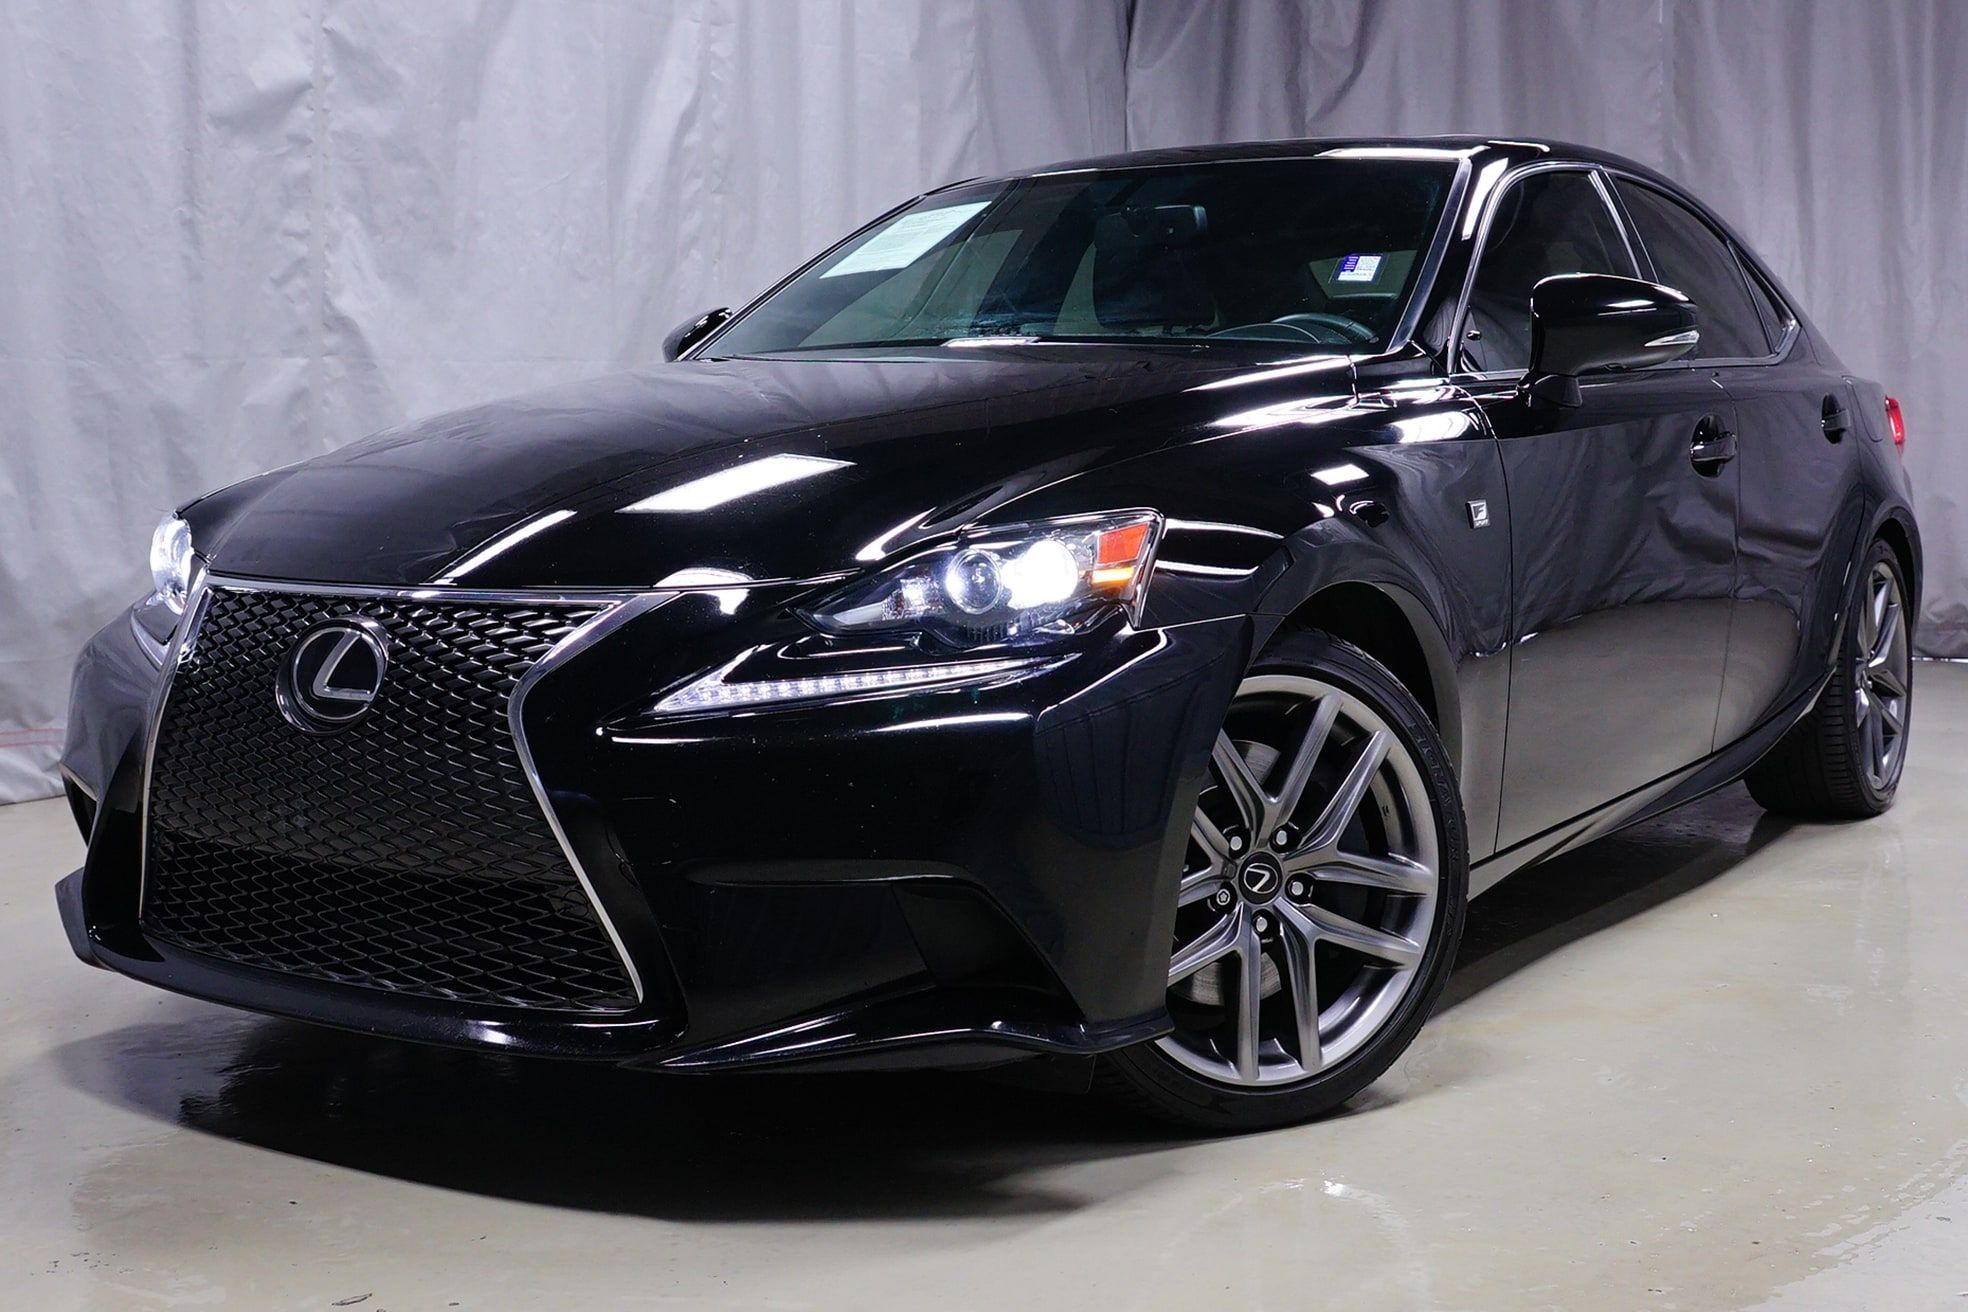 Certified Pre Owned One Owner Free Carfax Over 50 Lenders 2015 Lexus Is350 Fsport For Sale At Fincher S Texas Best A Lexus Cool Cars Trucks For Sale